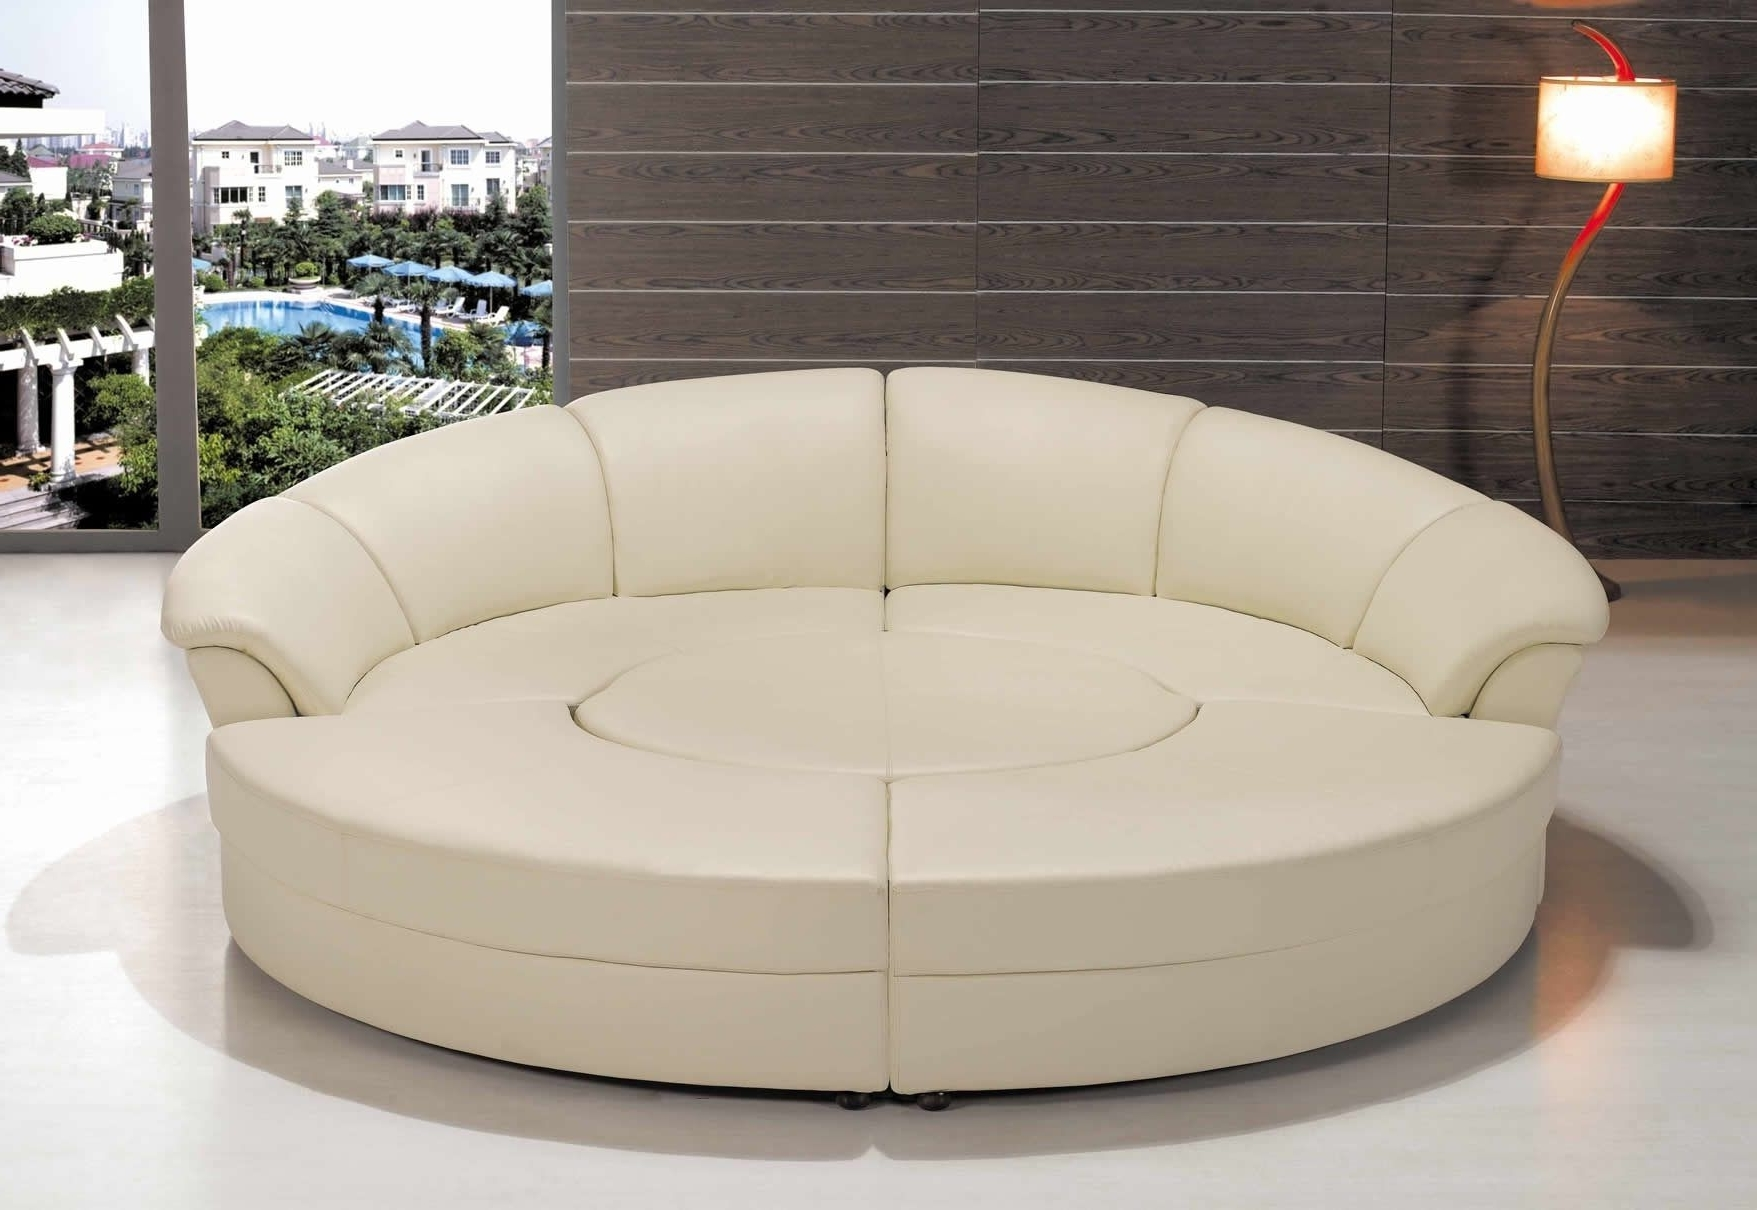 Semi Circular Sectional Sofa 2 – Semi Circular Sofa Uk, Sofa Pertaining To Well Known Semicircular Sofas (View 15 of 20)